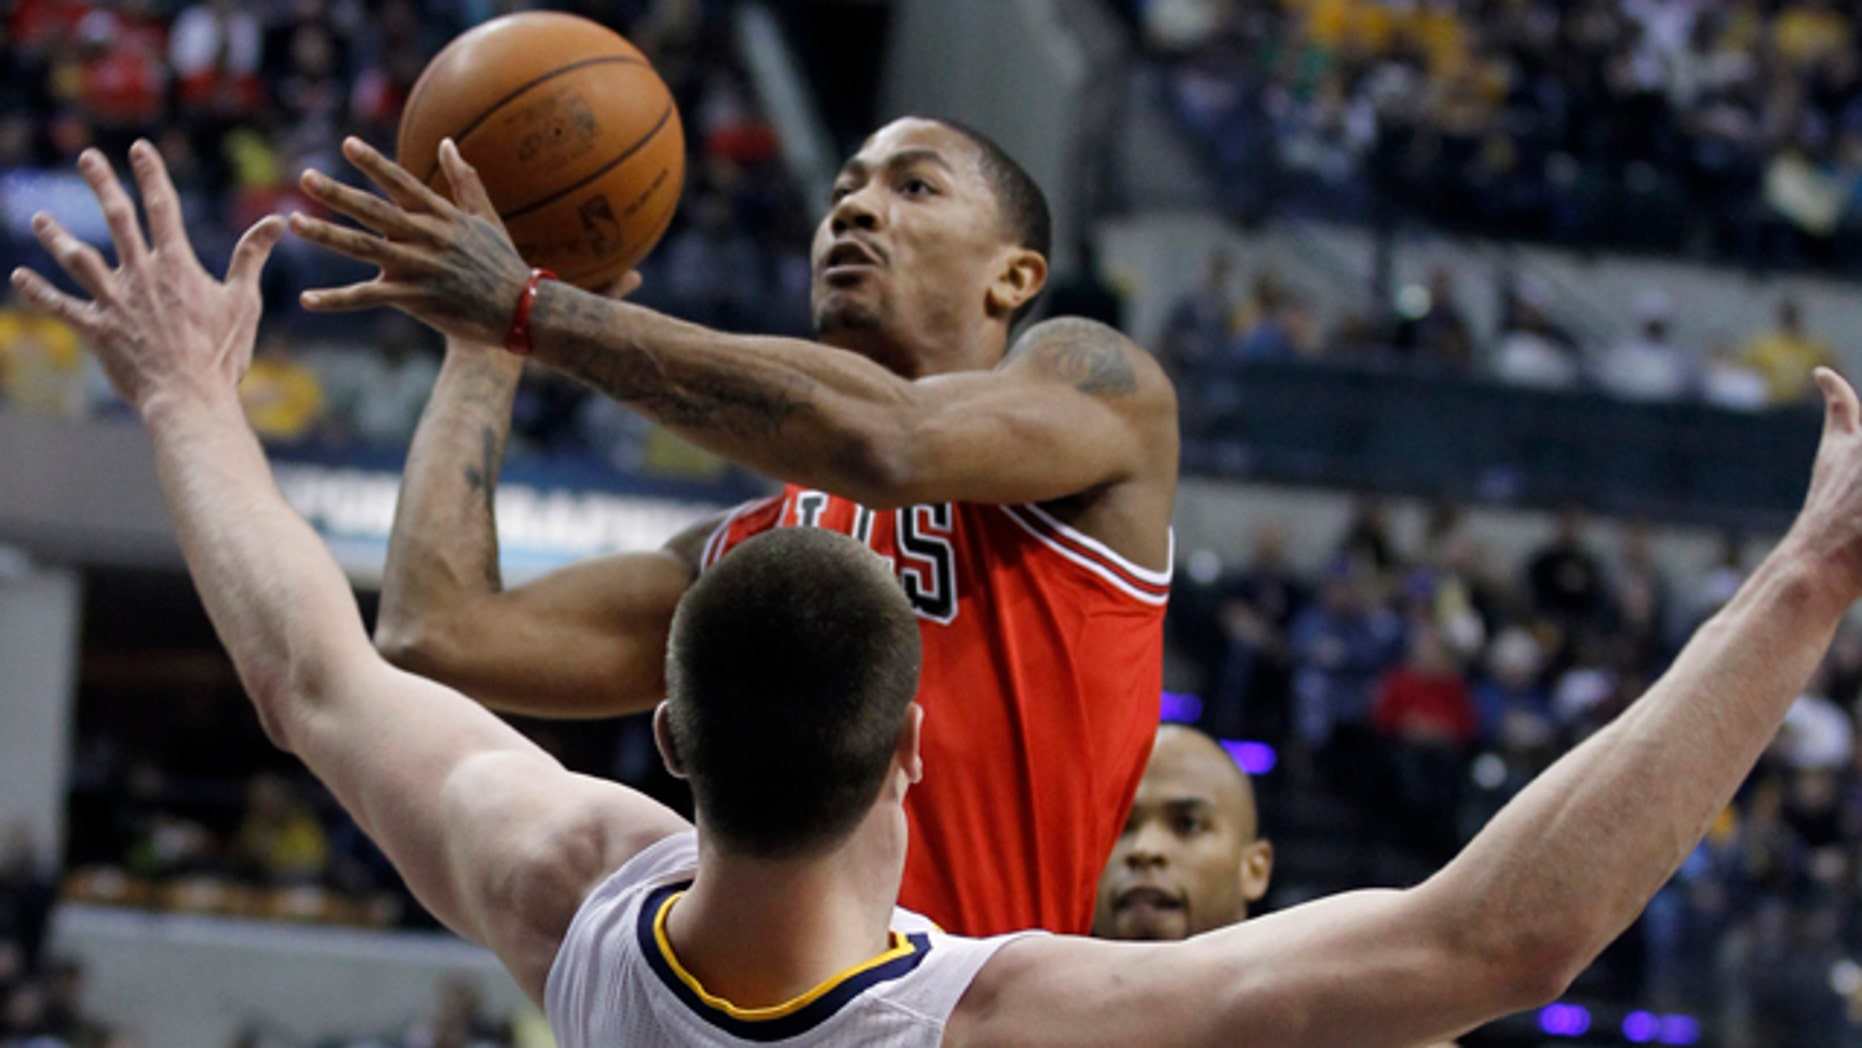 April 12: Indiana Pacers' Tyler Hansbrough (50) tries to draw a charging foul as Chicago Bulls' Derrick Rose drives to the basket during the first half of Game 3 of a first-round NBA basketball series in Indianapolis.